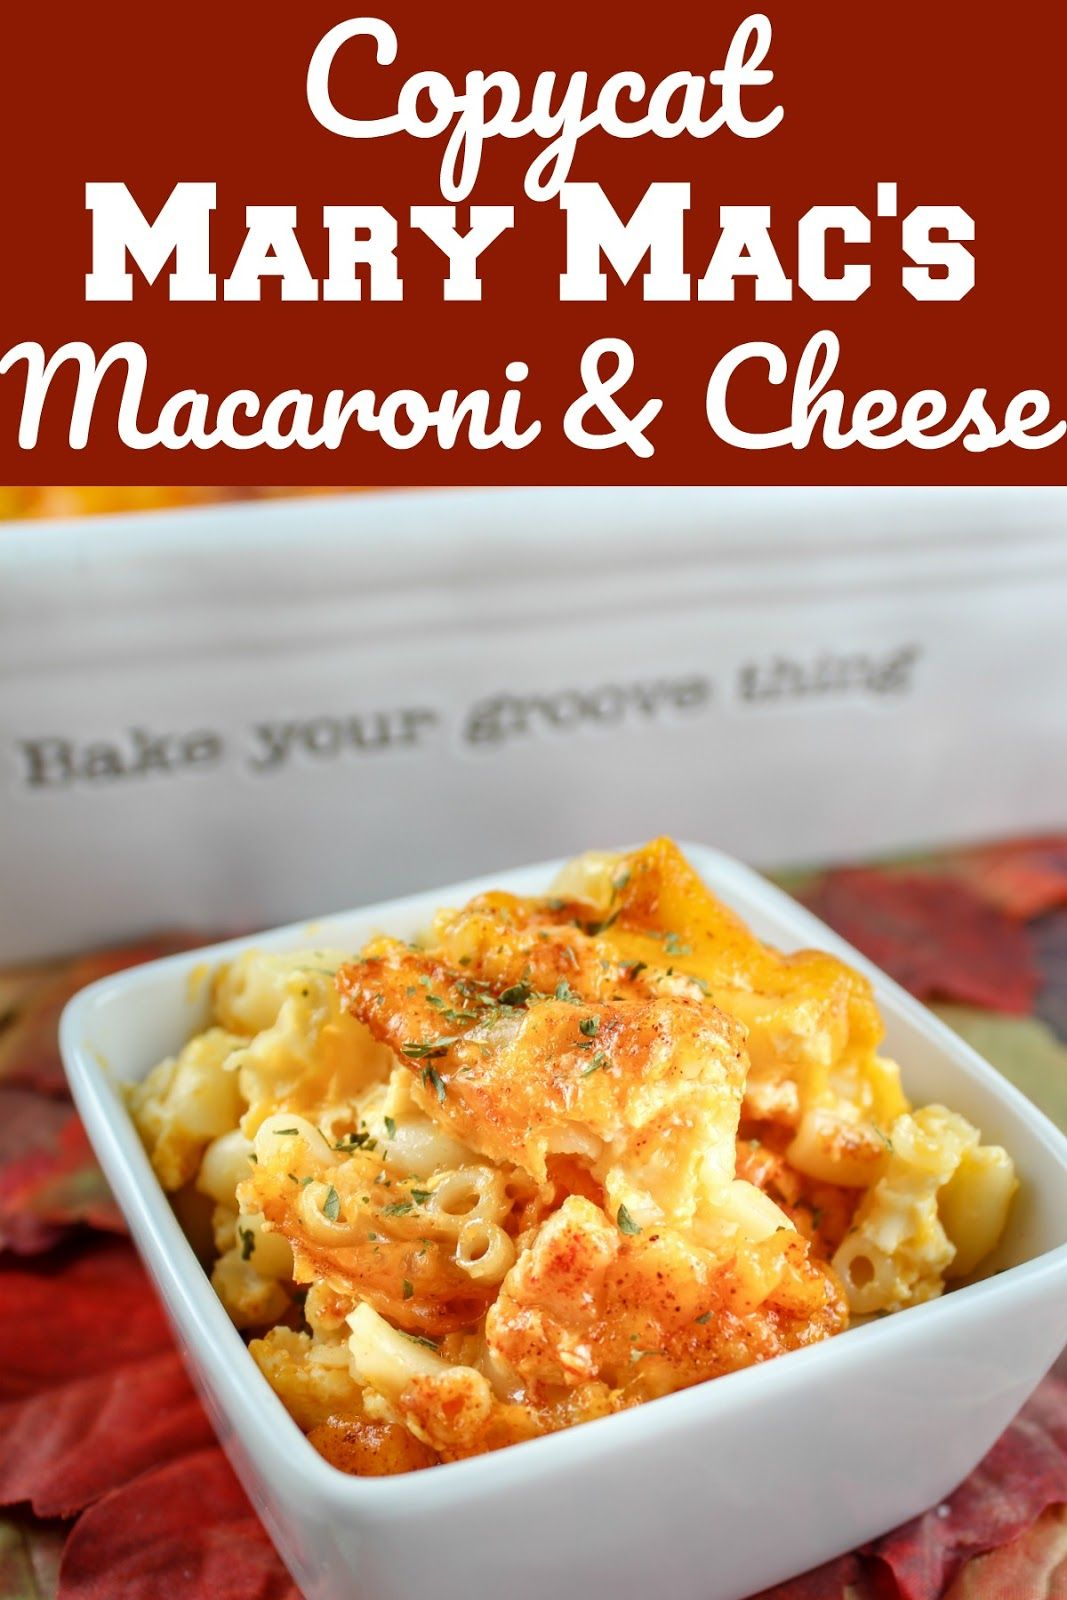 Copycat mary macs baked macaroni and cheese the food